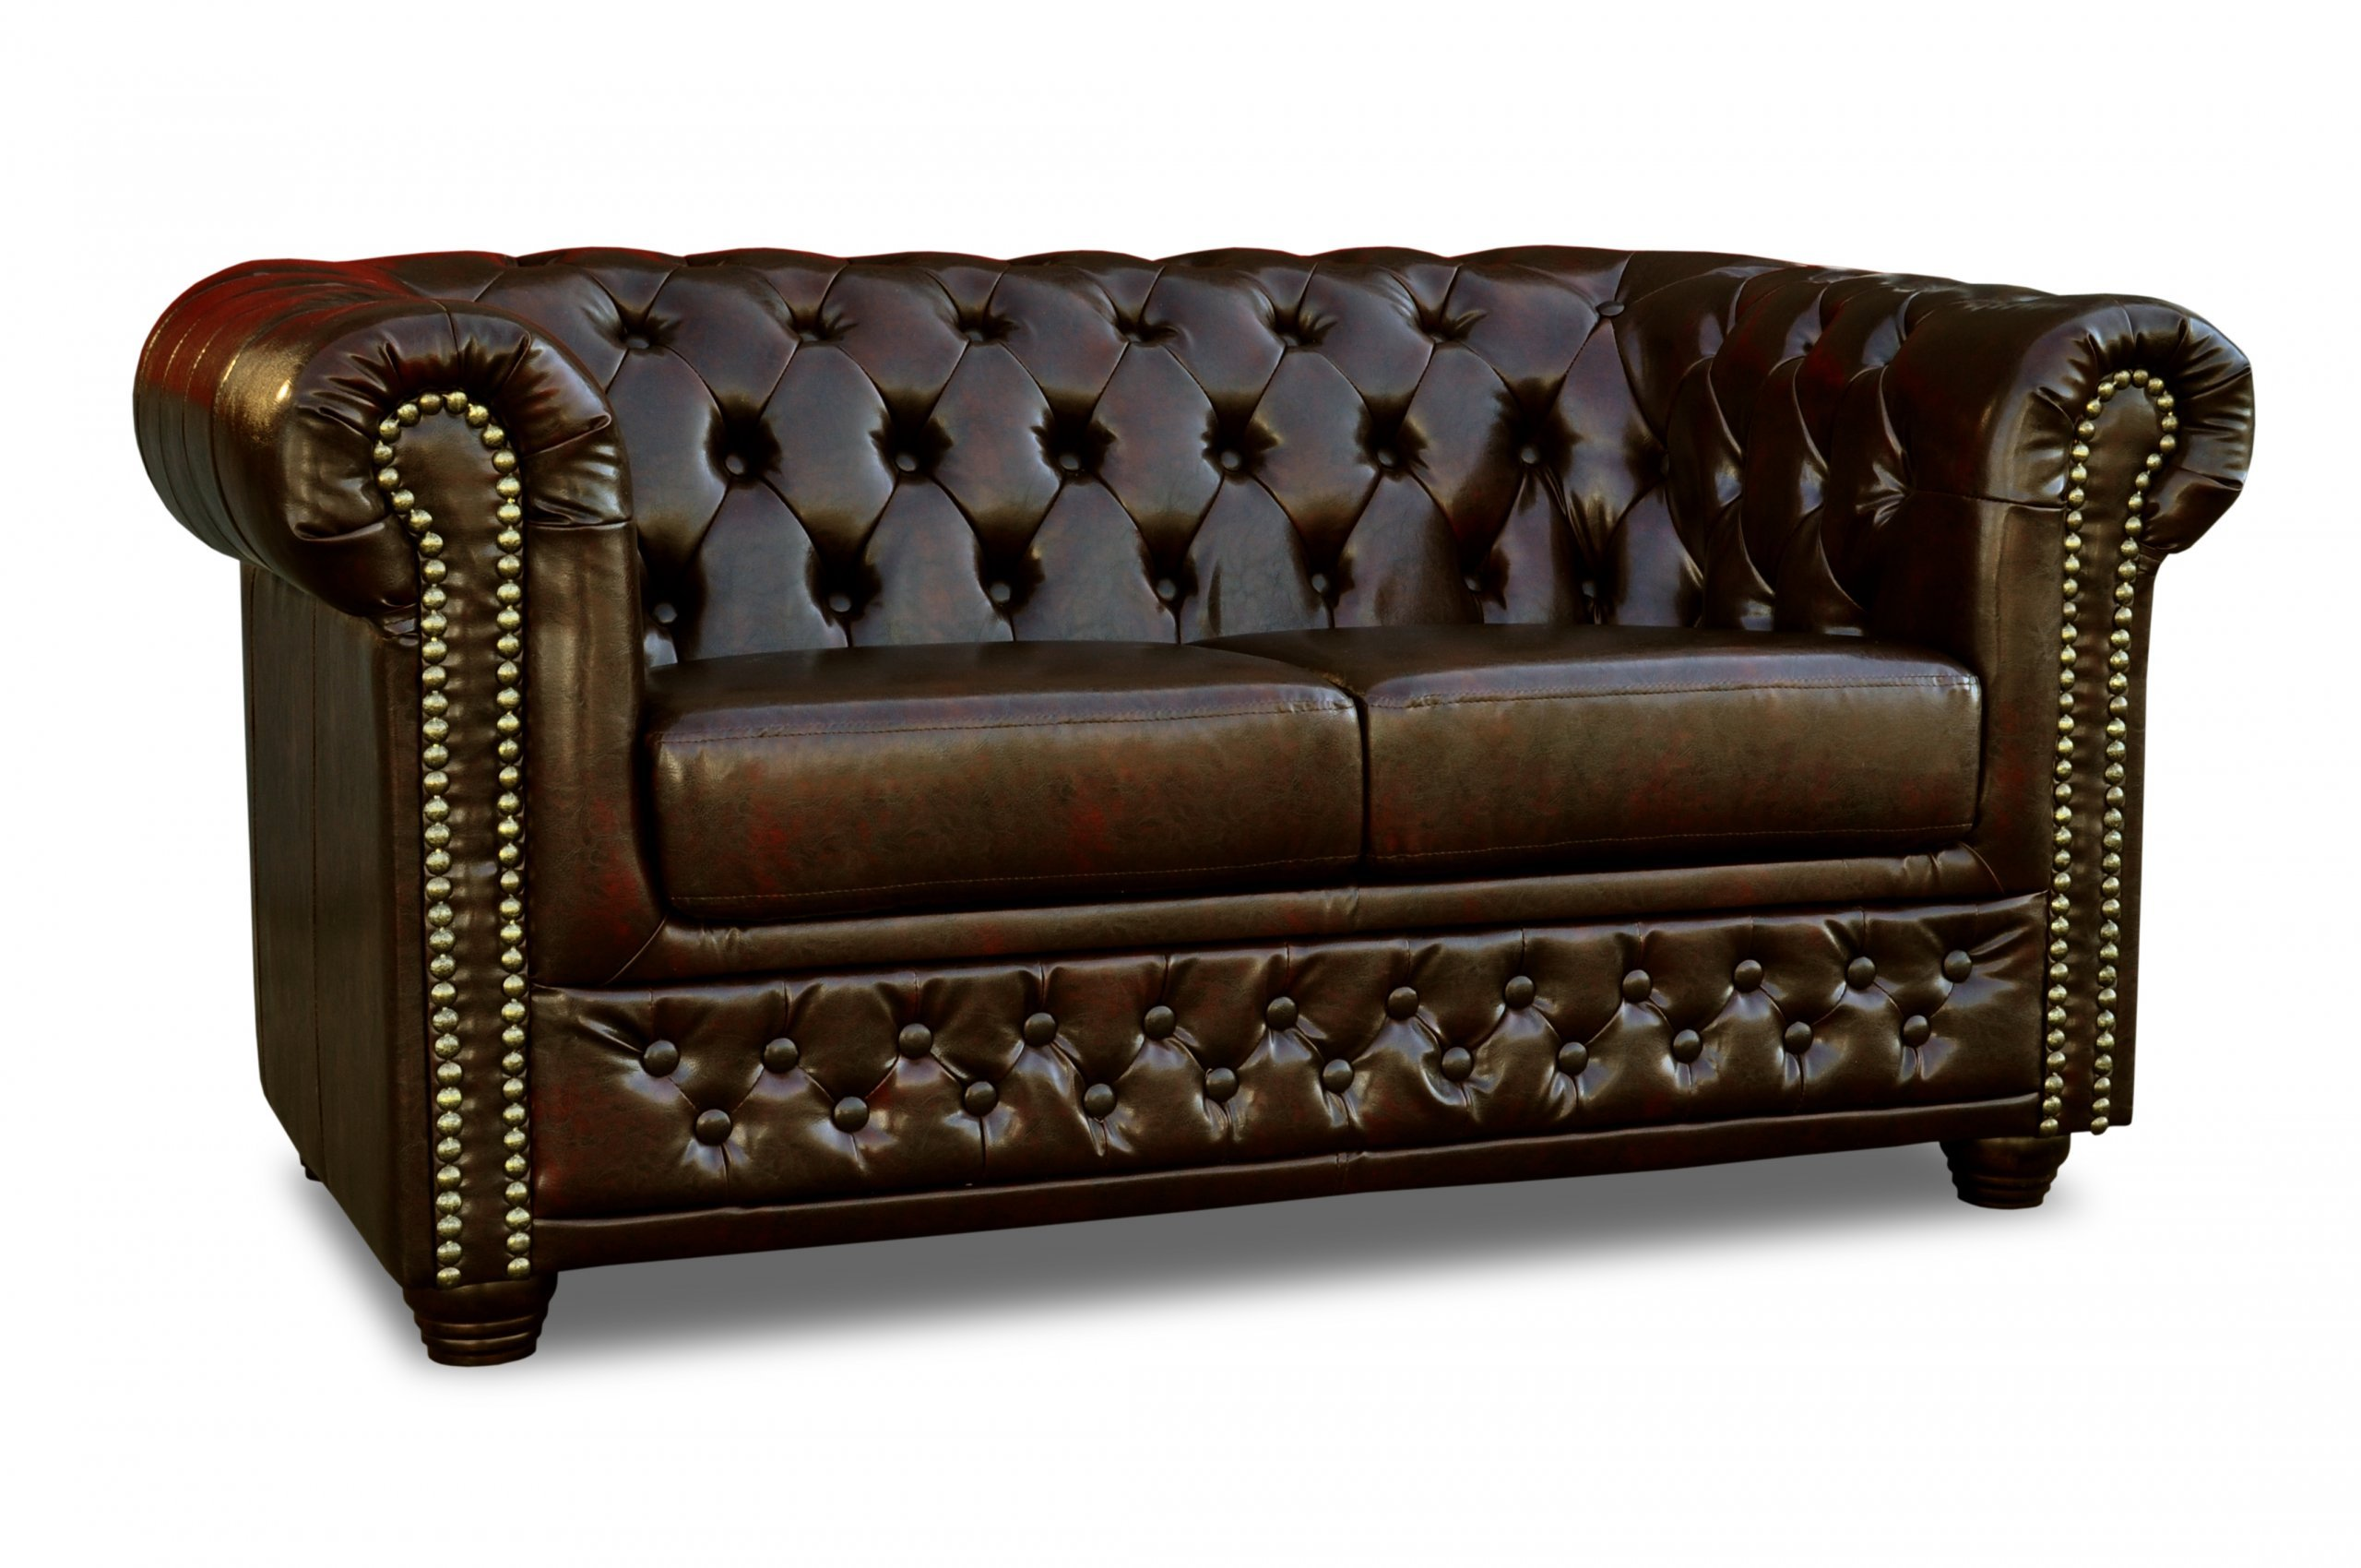 Lounge Sessel Chesterfield Chesterfield Sofa 3 43 2er Sitzer 43 Sessel Couch Garnitur